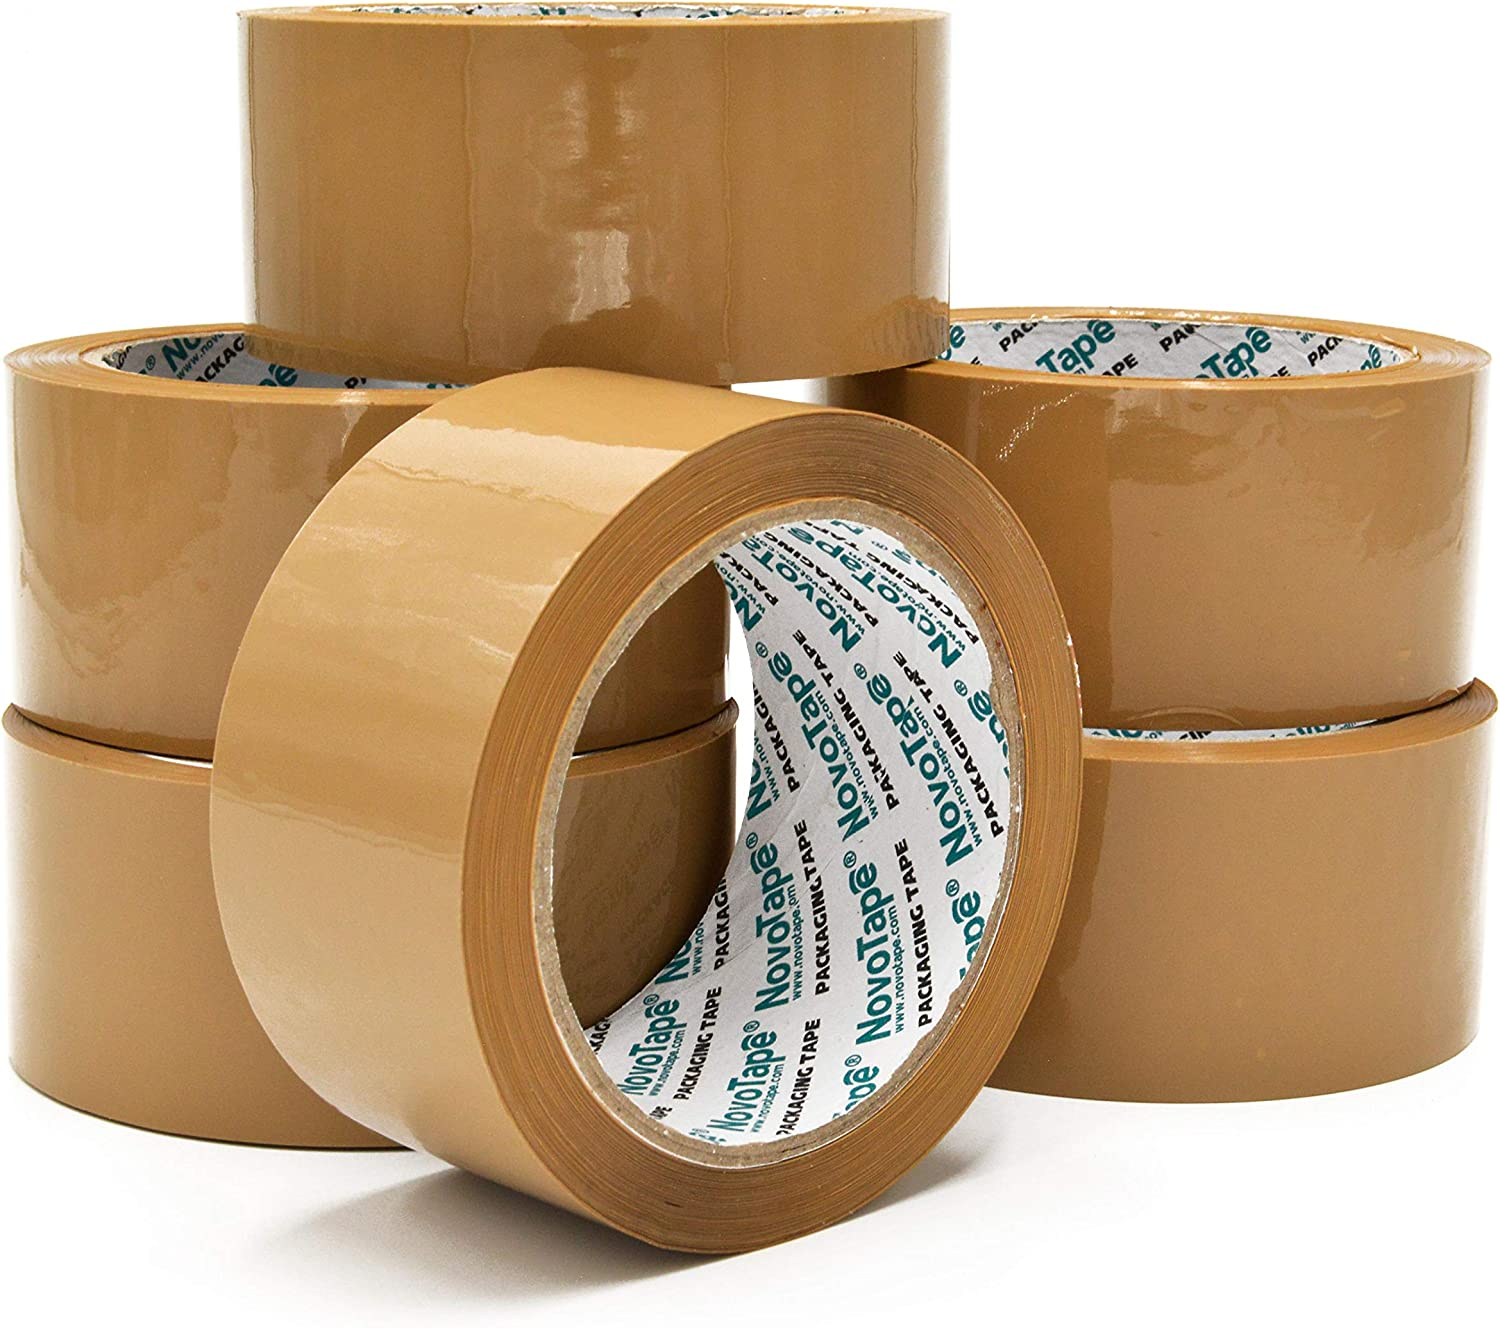 PARCEL TAPE STRONG PACKING TAPE 48mm x 66M Rolls OF BROWN CLEAR FRAGILE